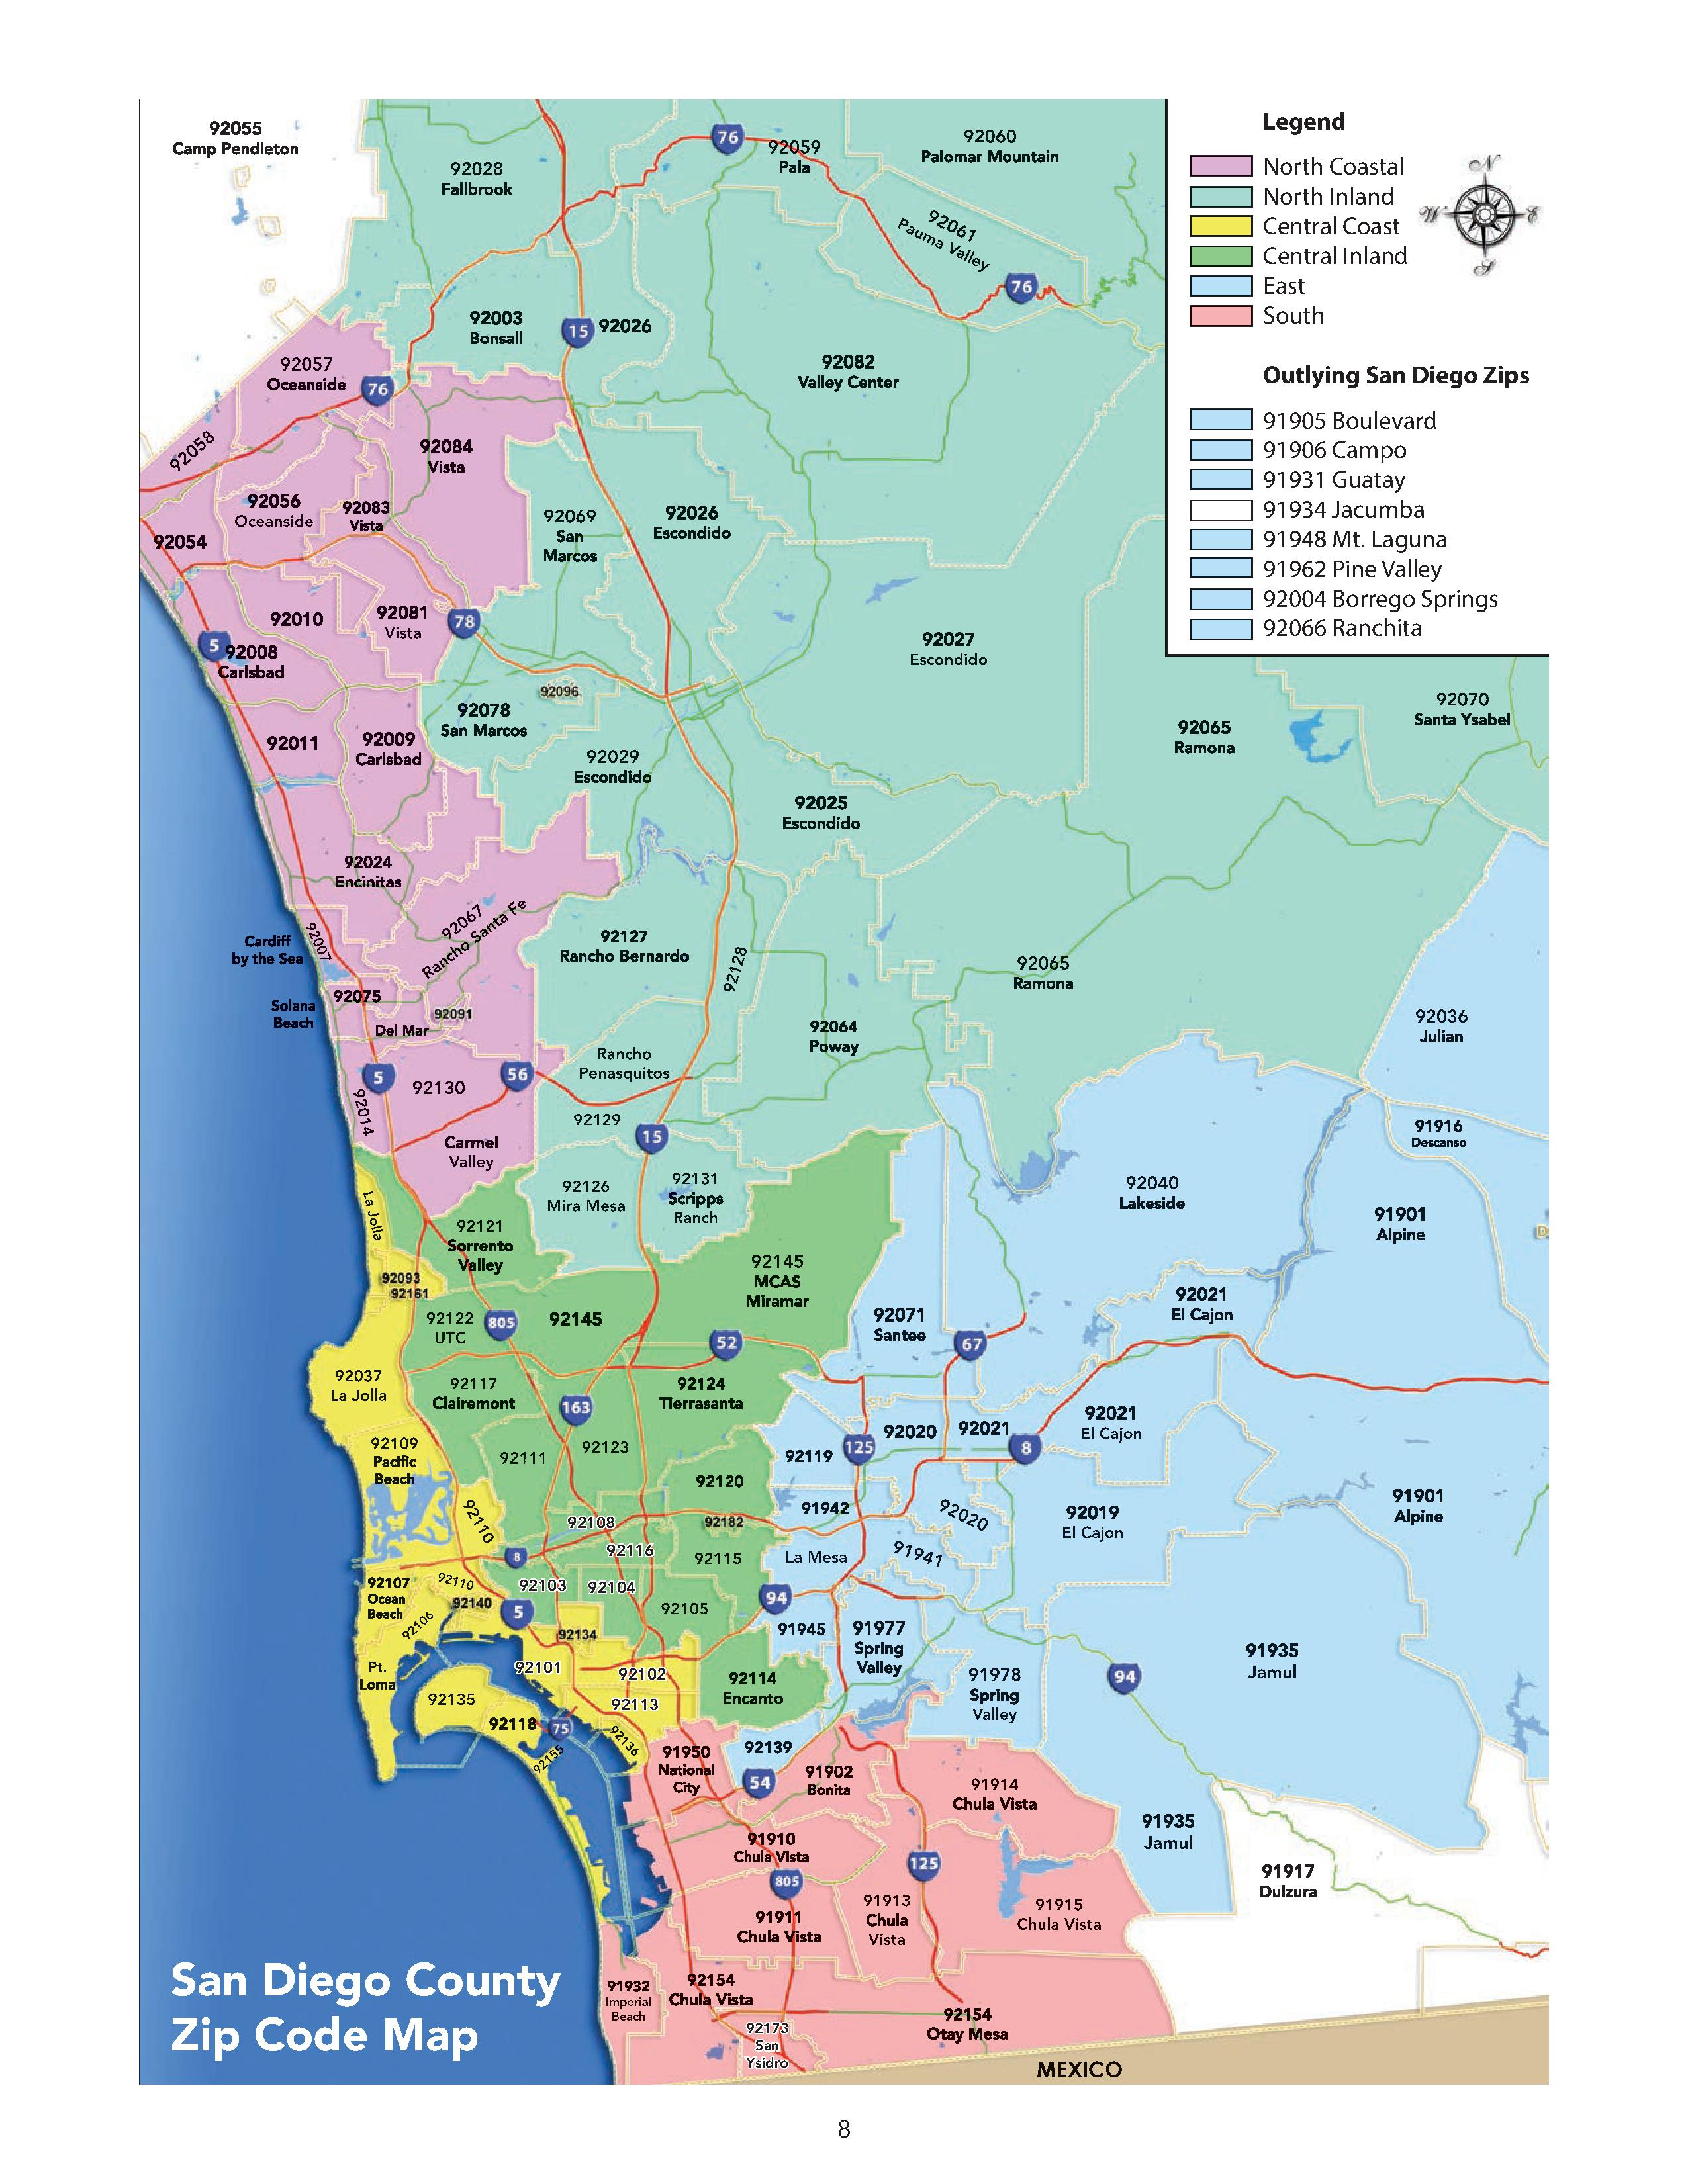 San Diego County Zip Code Map